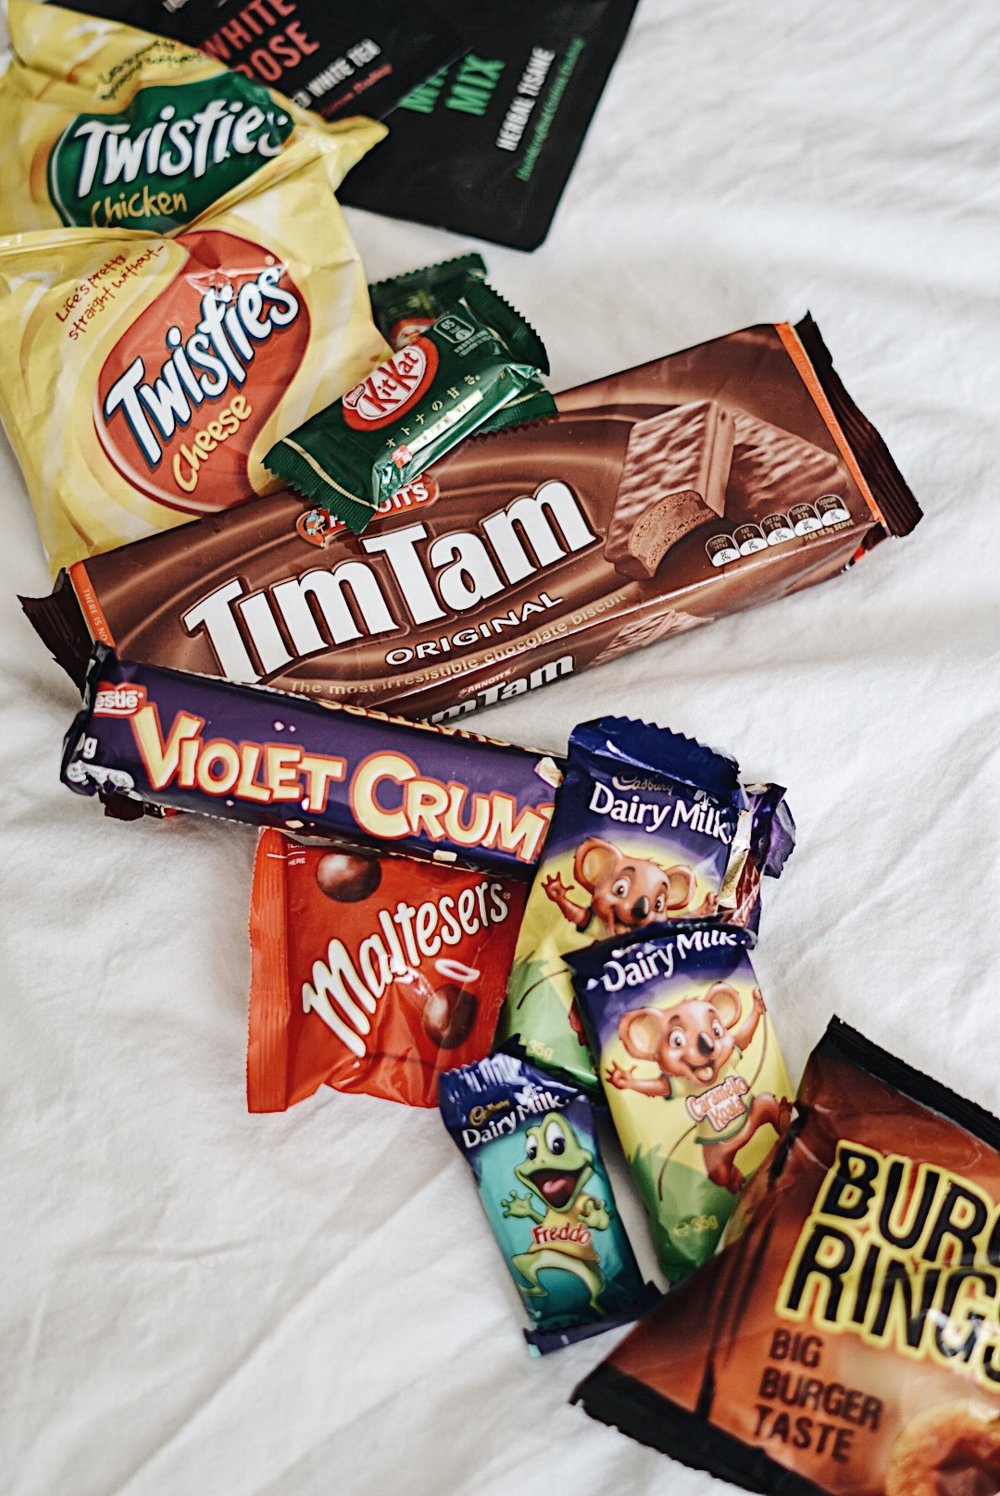 australian-snacks-tim-tam-violet-crumble-burger-rings-twisties